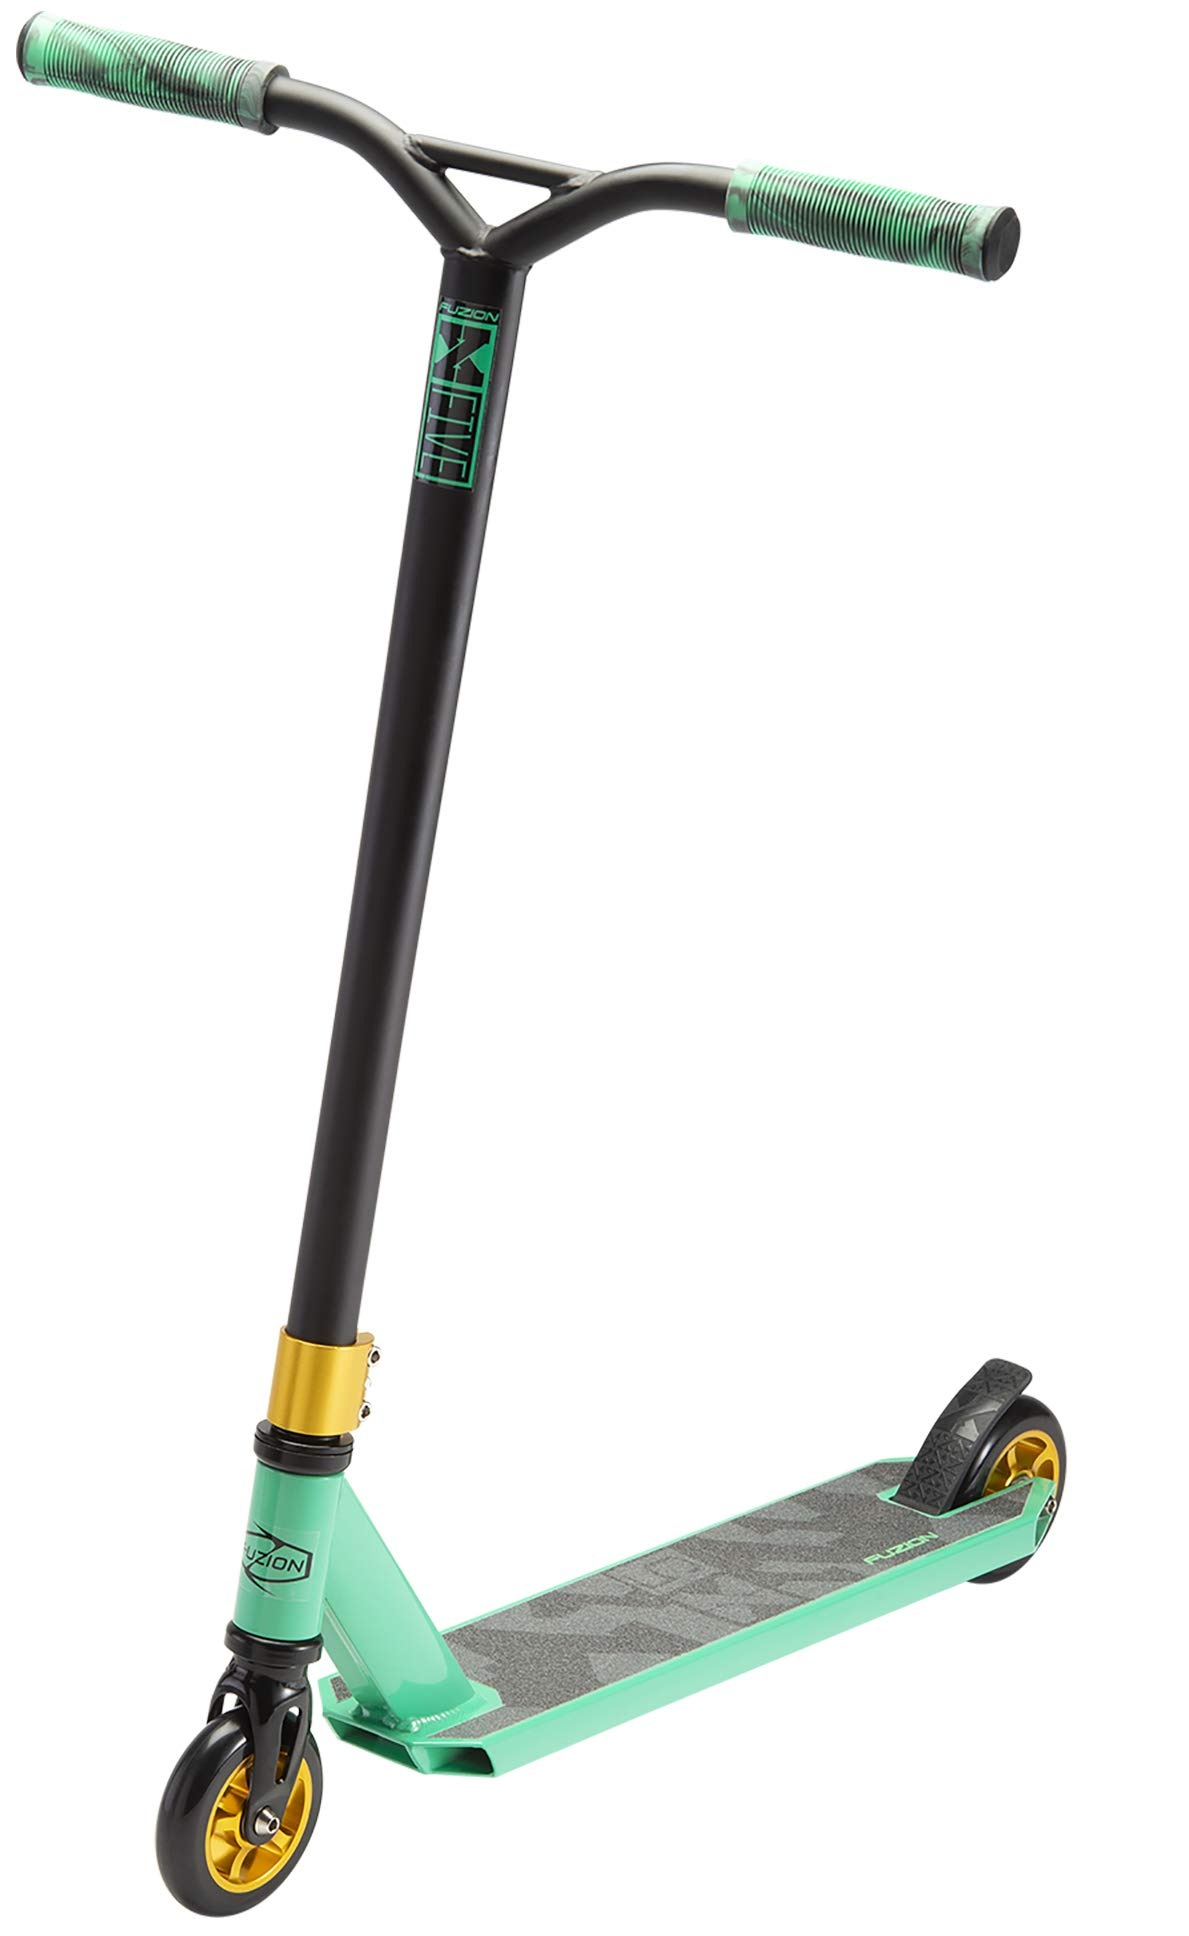 Fuzion X-5 Pro Scooters - Trick Scooter - Beginner Stunt Scooters for Kids 8 Years and Up - Quality Freestyle Kick Scooter for Boys and Girls (Teal/Gold) by Fuzion